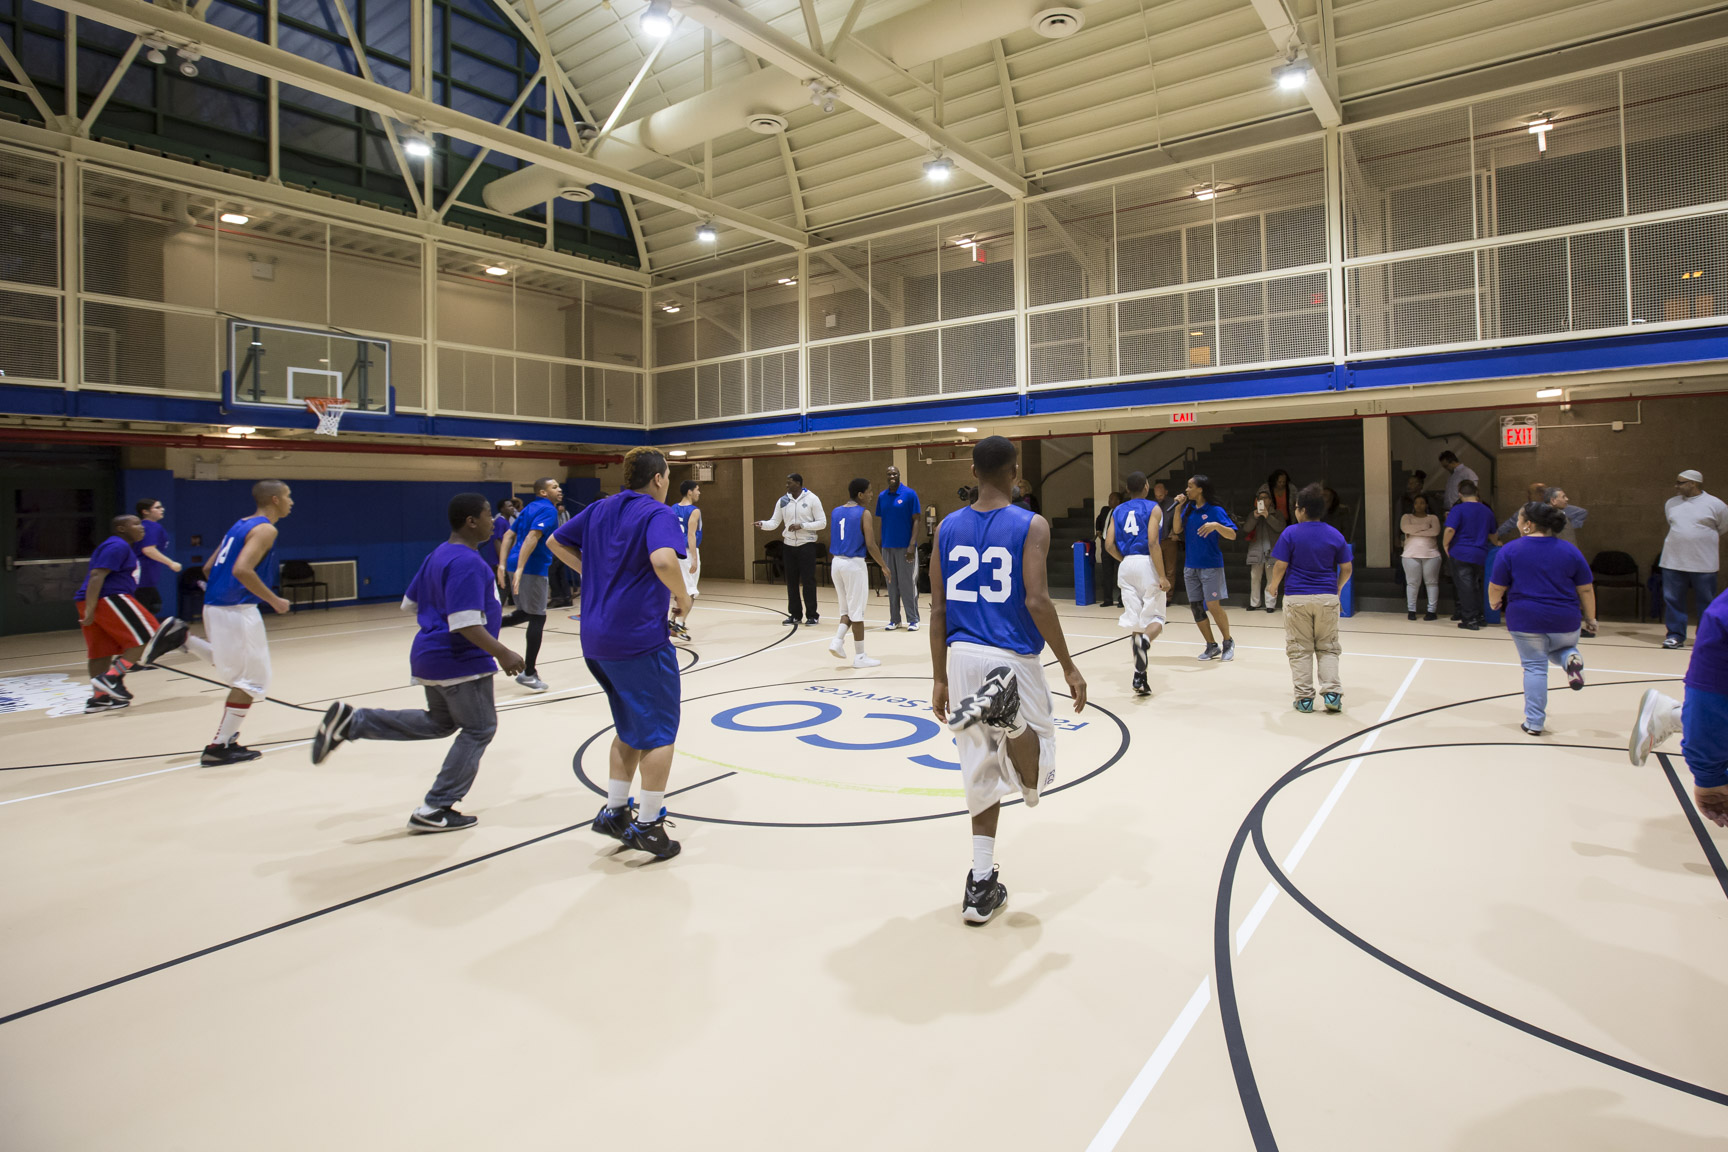 December 1, 2015: The Garden of Dreams Foundation unveils a completely refurbished gymnasium at the SCO Family of Services Ottilie Residential Treatment Facility in Briarwood, Queens. The completed project, provided through a grant of nearly $230,000, includes a new gymnasium floor and scoreboard; fresh paint throughout the entire facility; new vinyl tile flooring; additional lighting; new windows that provide natural light and upgraded heating and air conditioning systems.